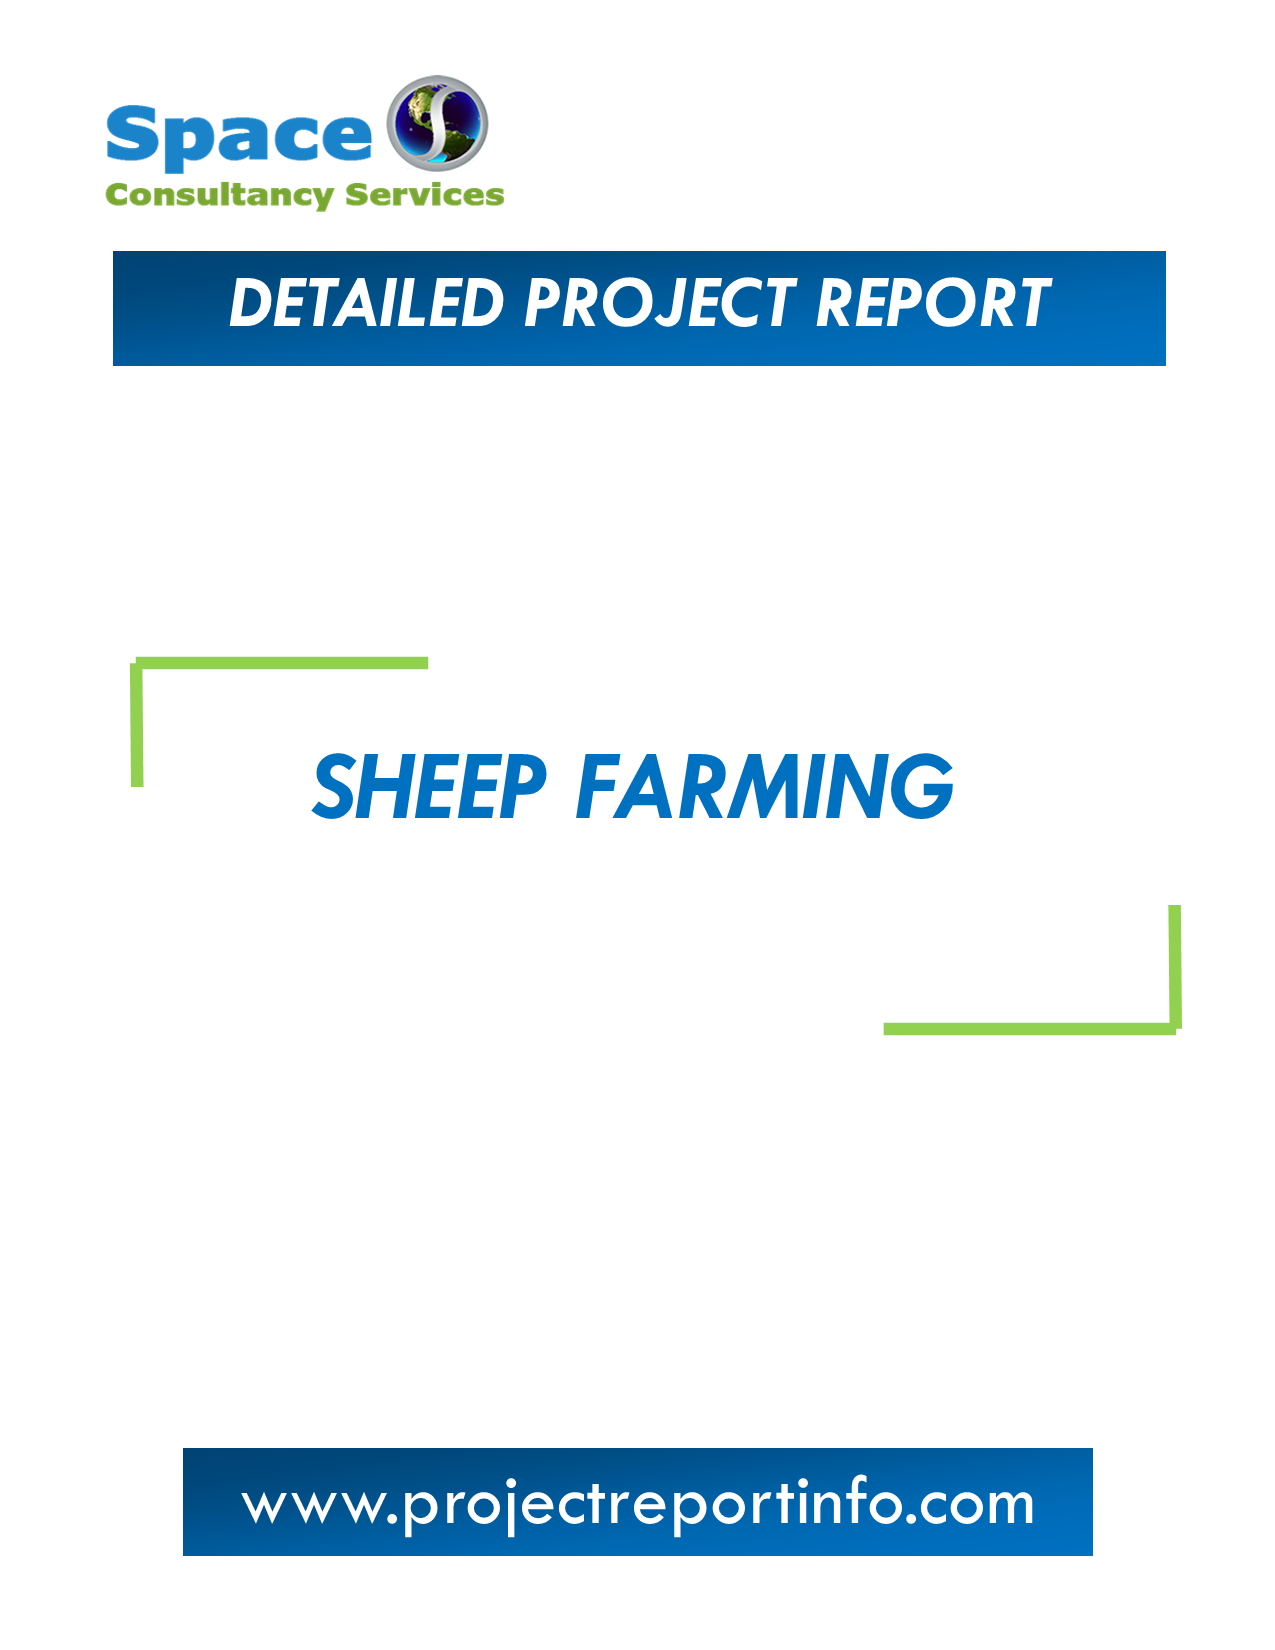 Project Report on Sheep Farming